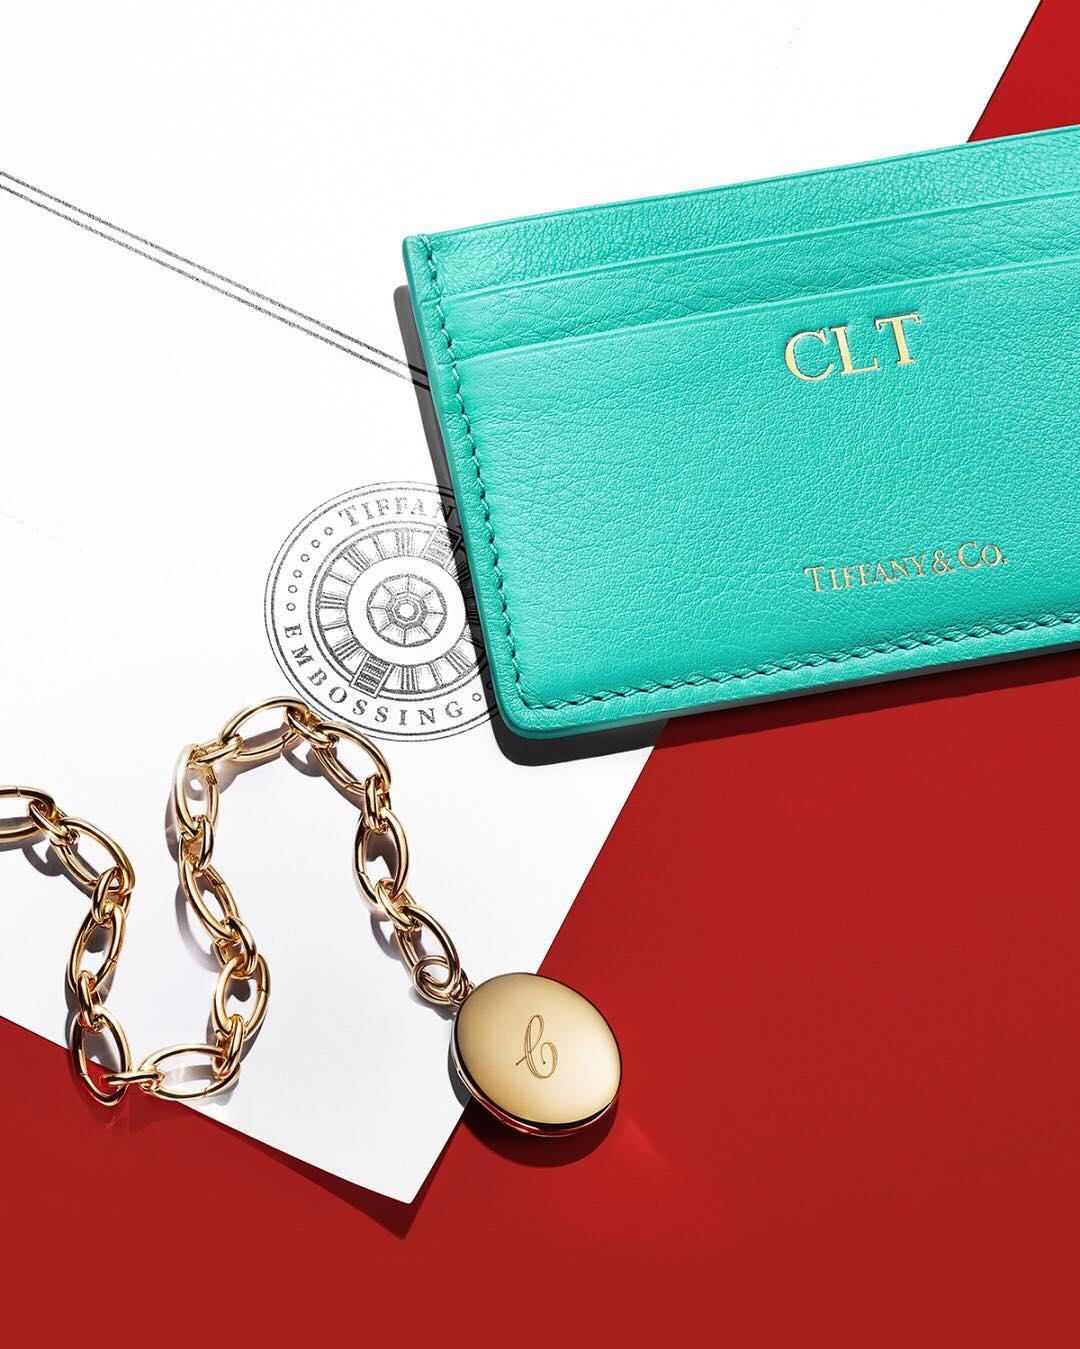 A special occasion deserves a little extra love. Whether it's initials, a favorite quote or a secret message with a special meaning, Tiffany engraving and embossing adds a personal touch to any design.